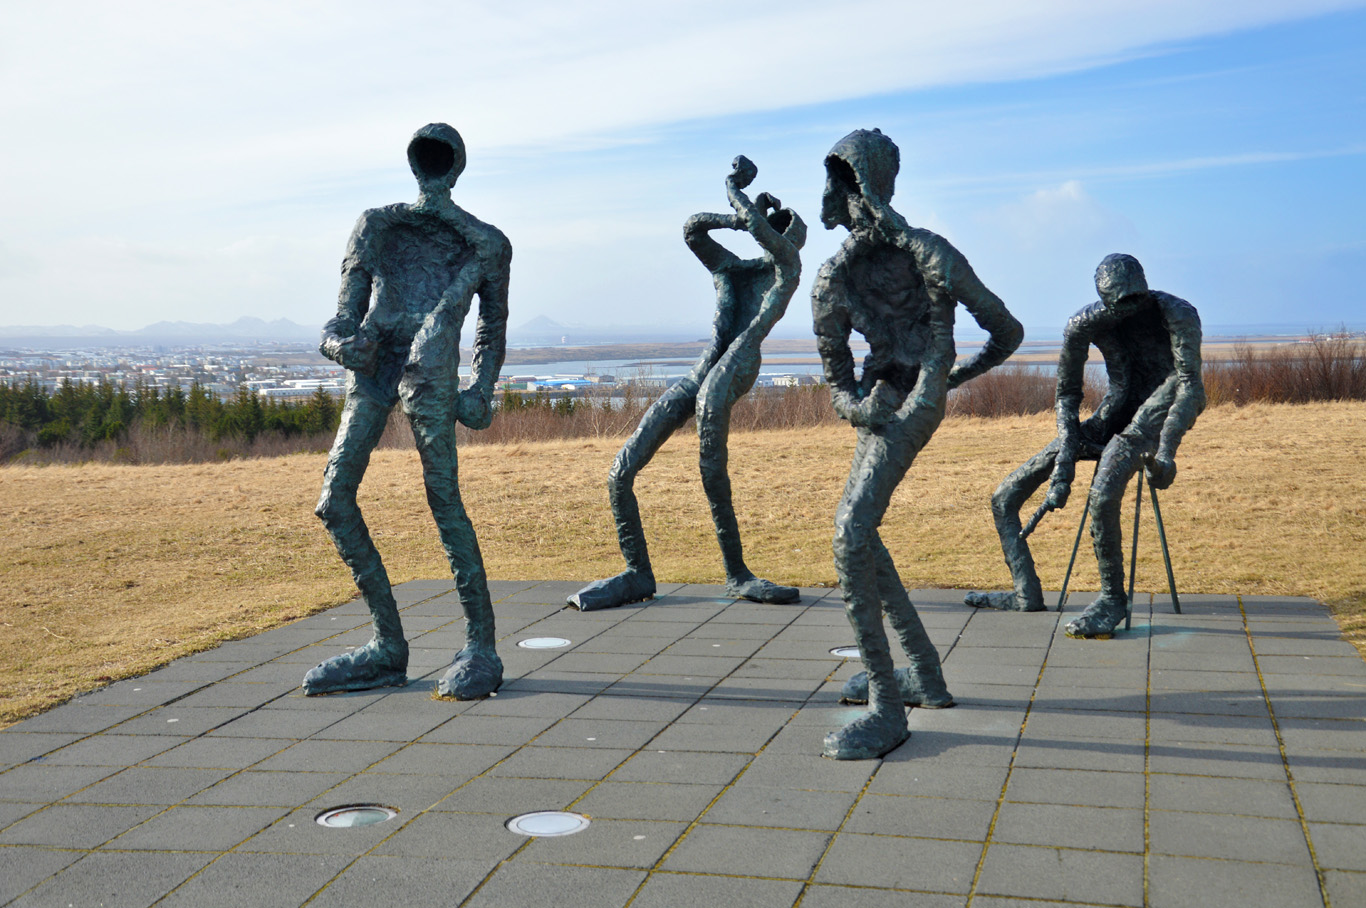 Statues in front of Perlan